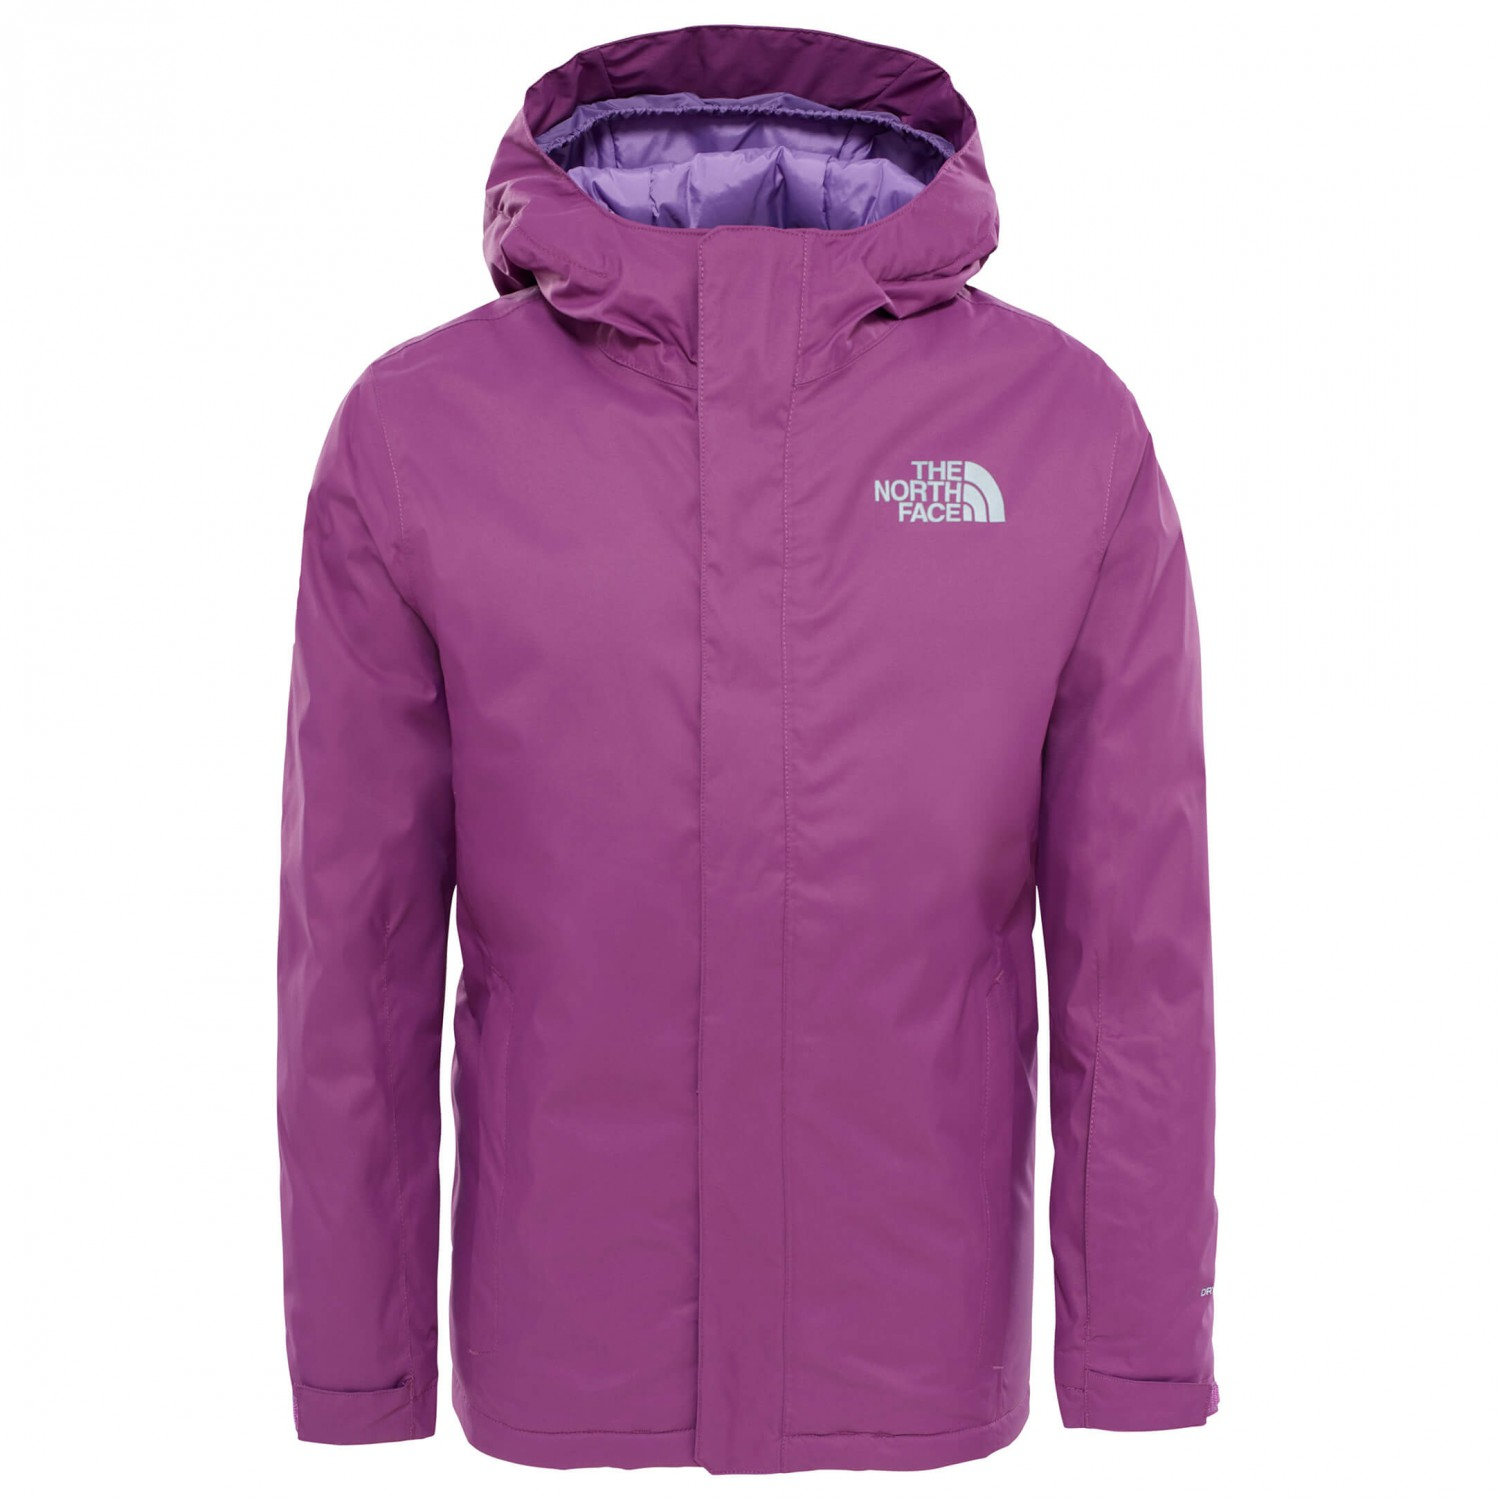 The North Face Snow Quest Jacket Ski Jacket Kids Free